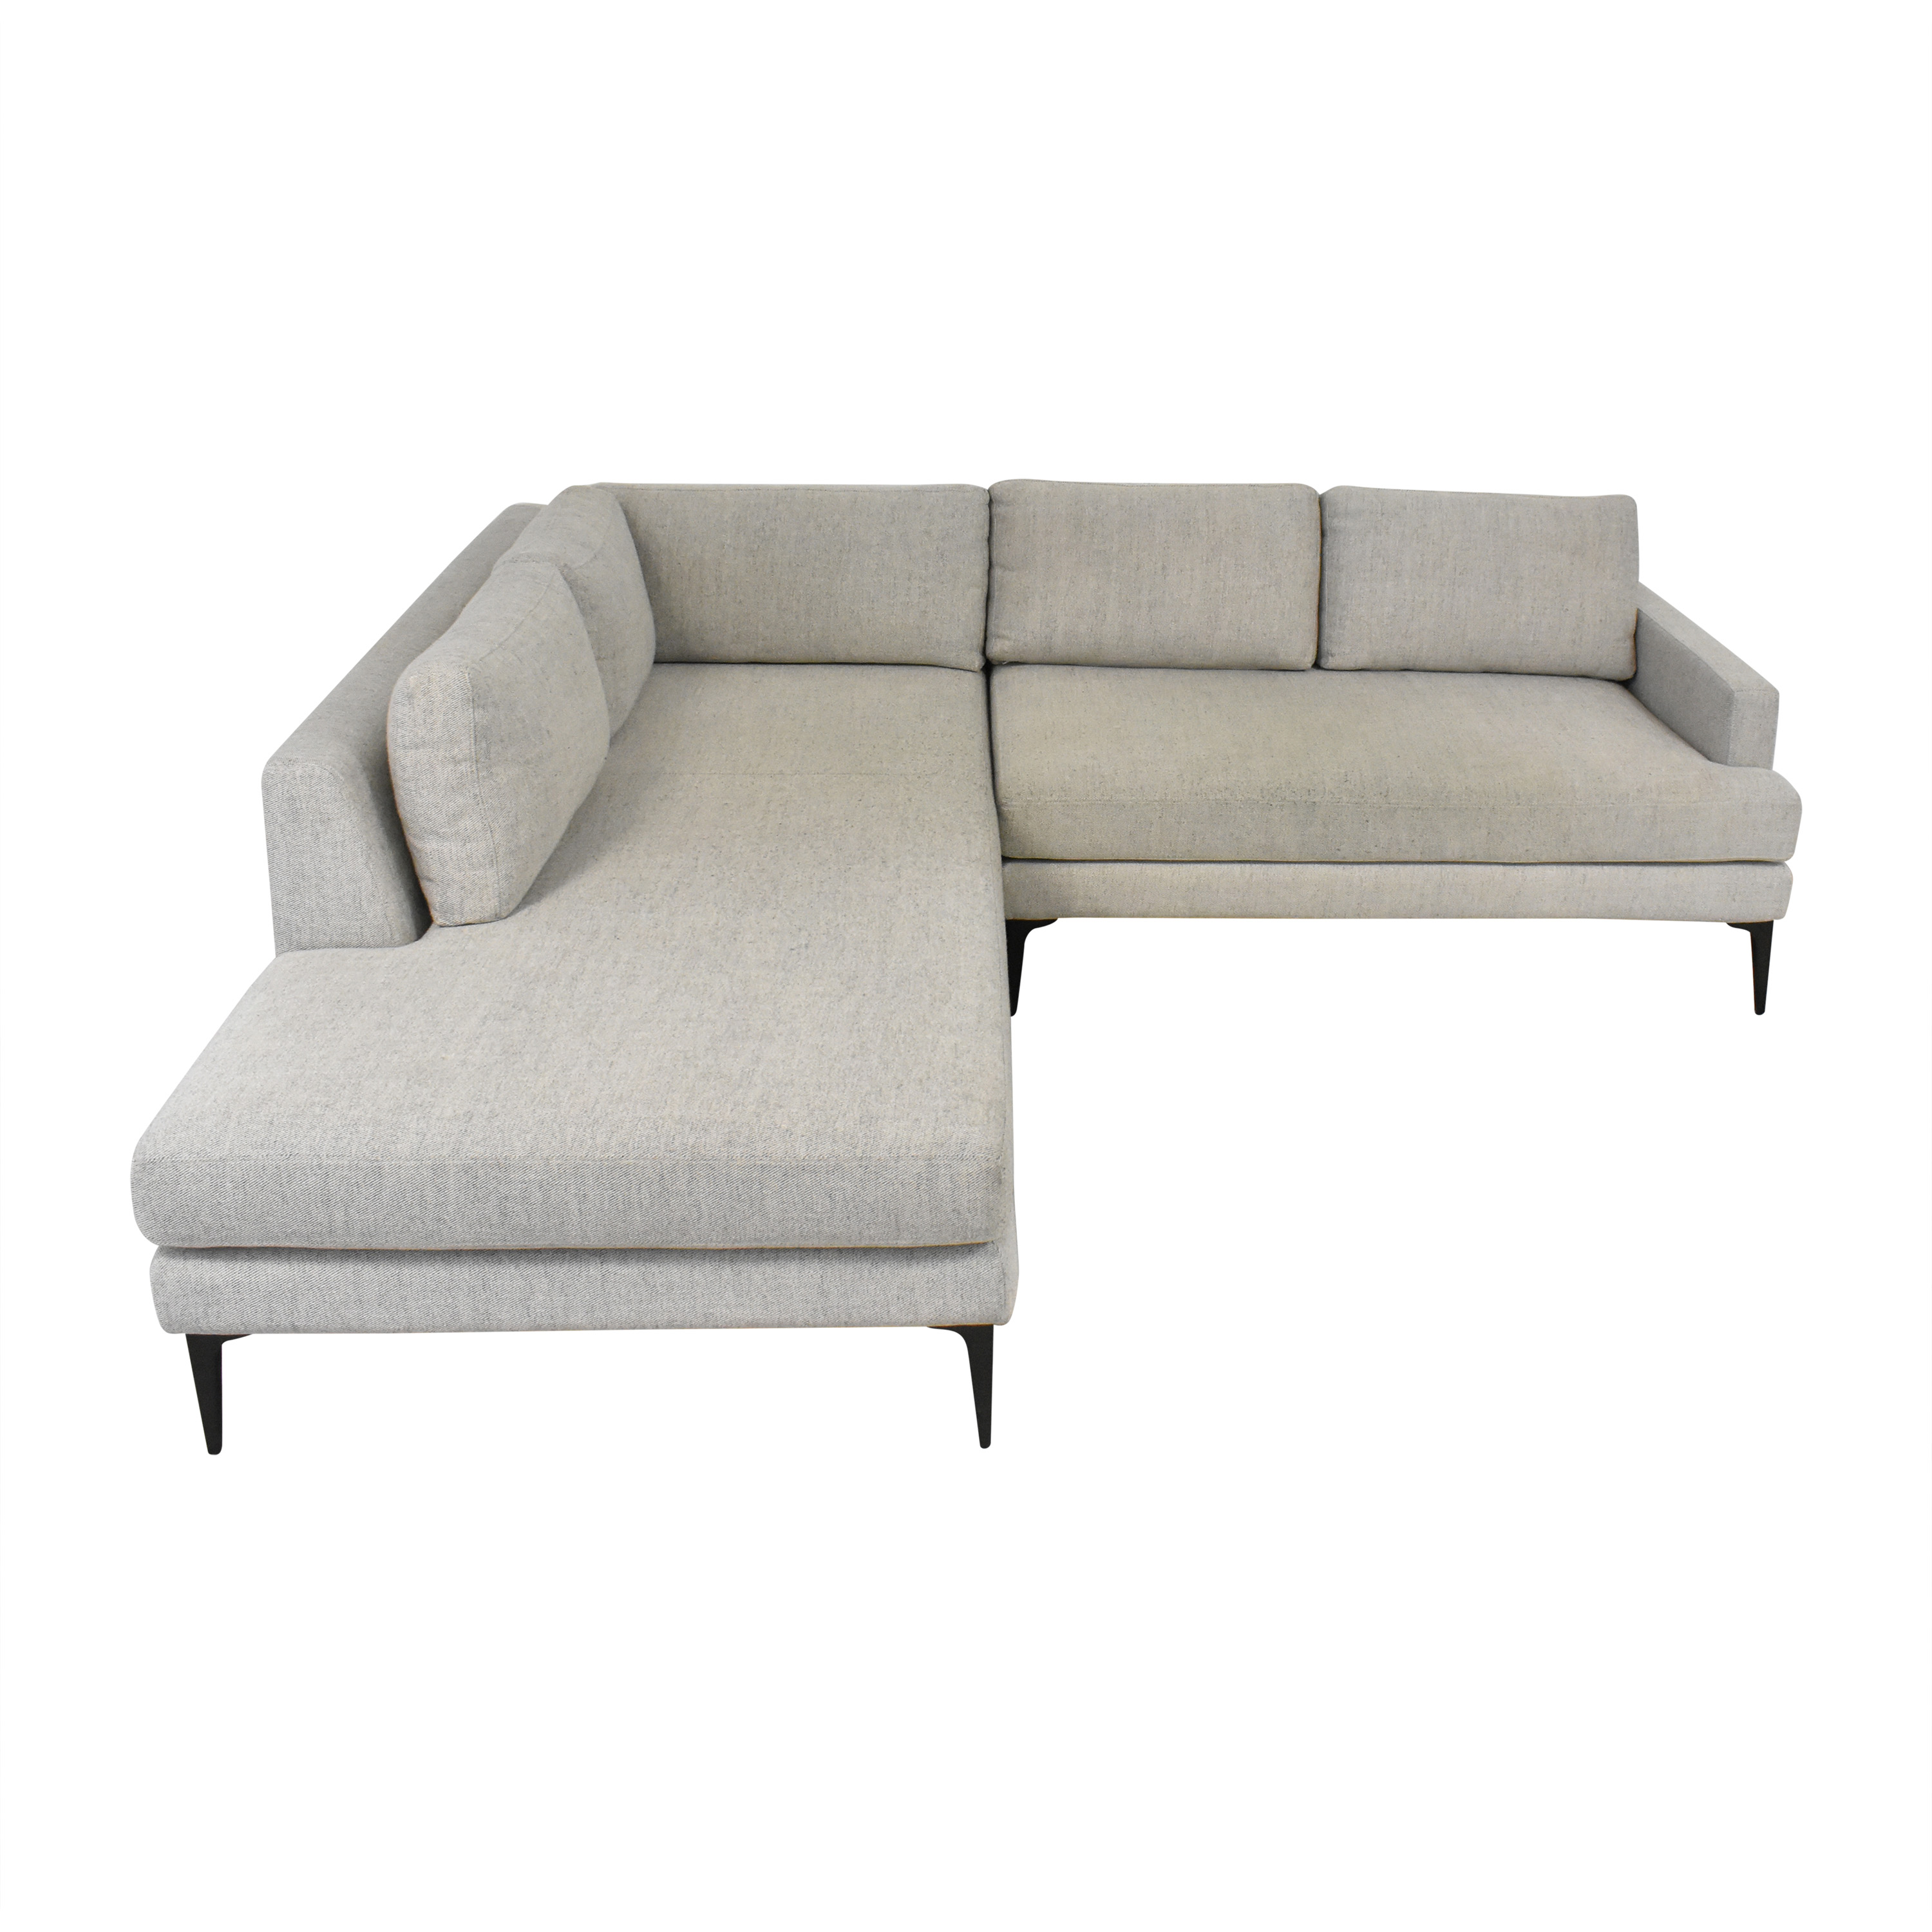 West Elm West Elm Andes Two Piece Terminal Chaise Sectional